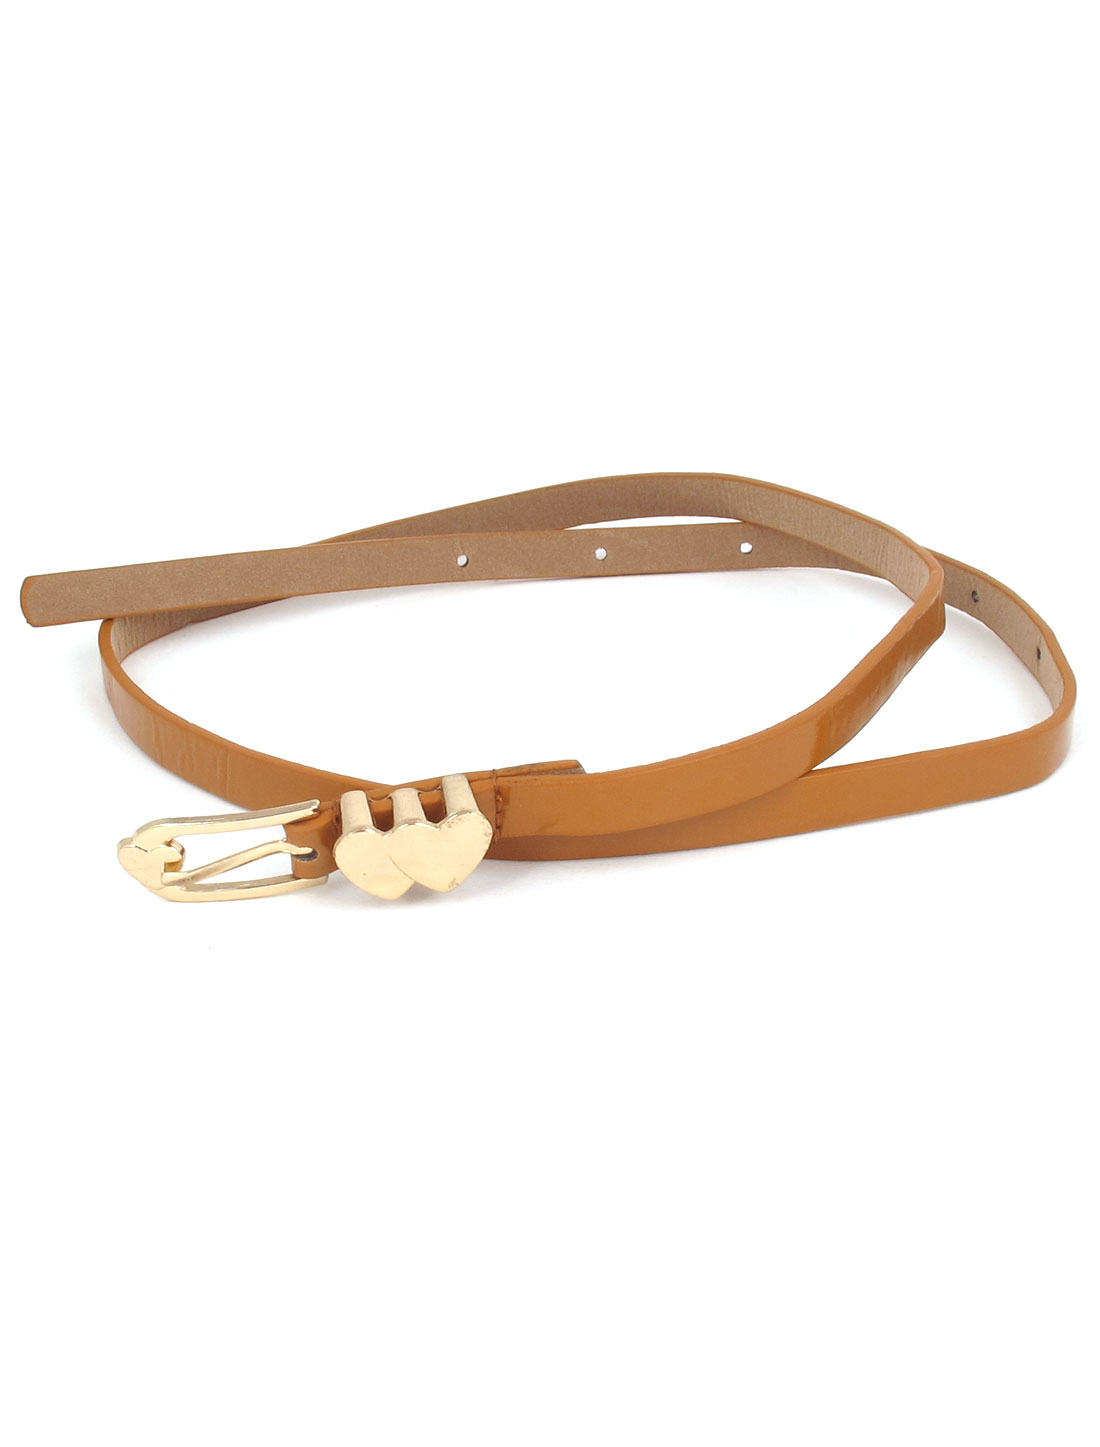 Women Double Heart Shaped Metal Single Pin Buckle Perforated Adjustable Faux Leather Waist Belt Waistbelt Brown